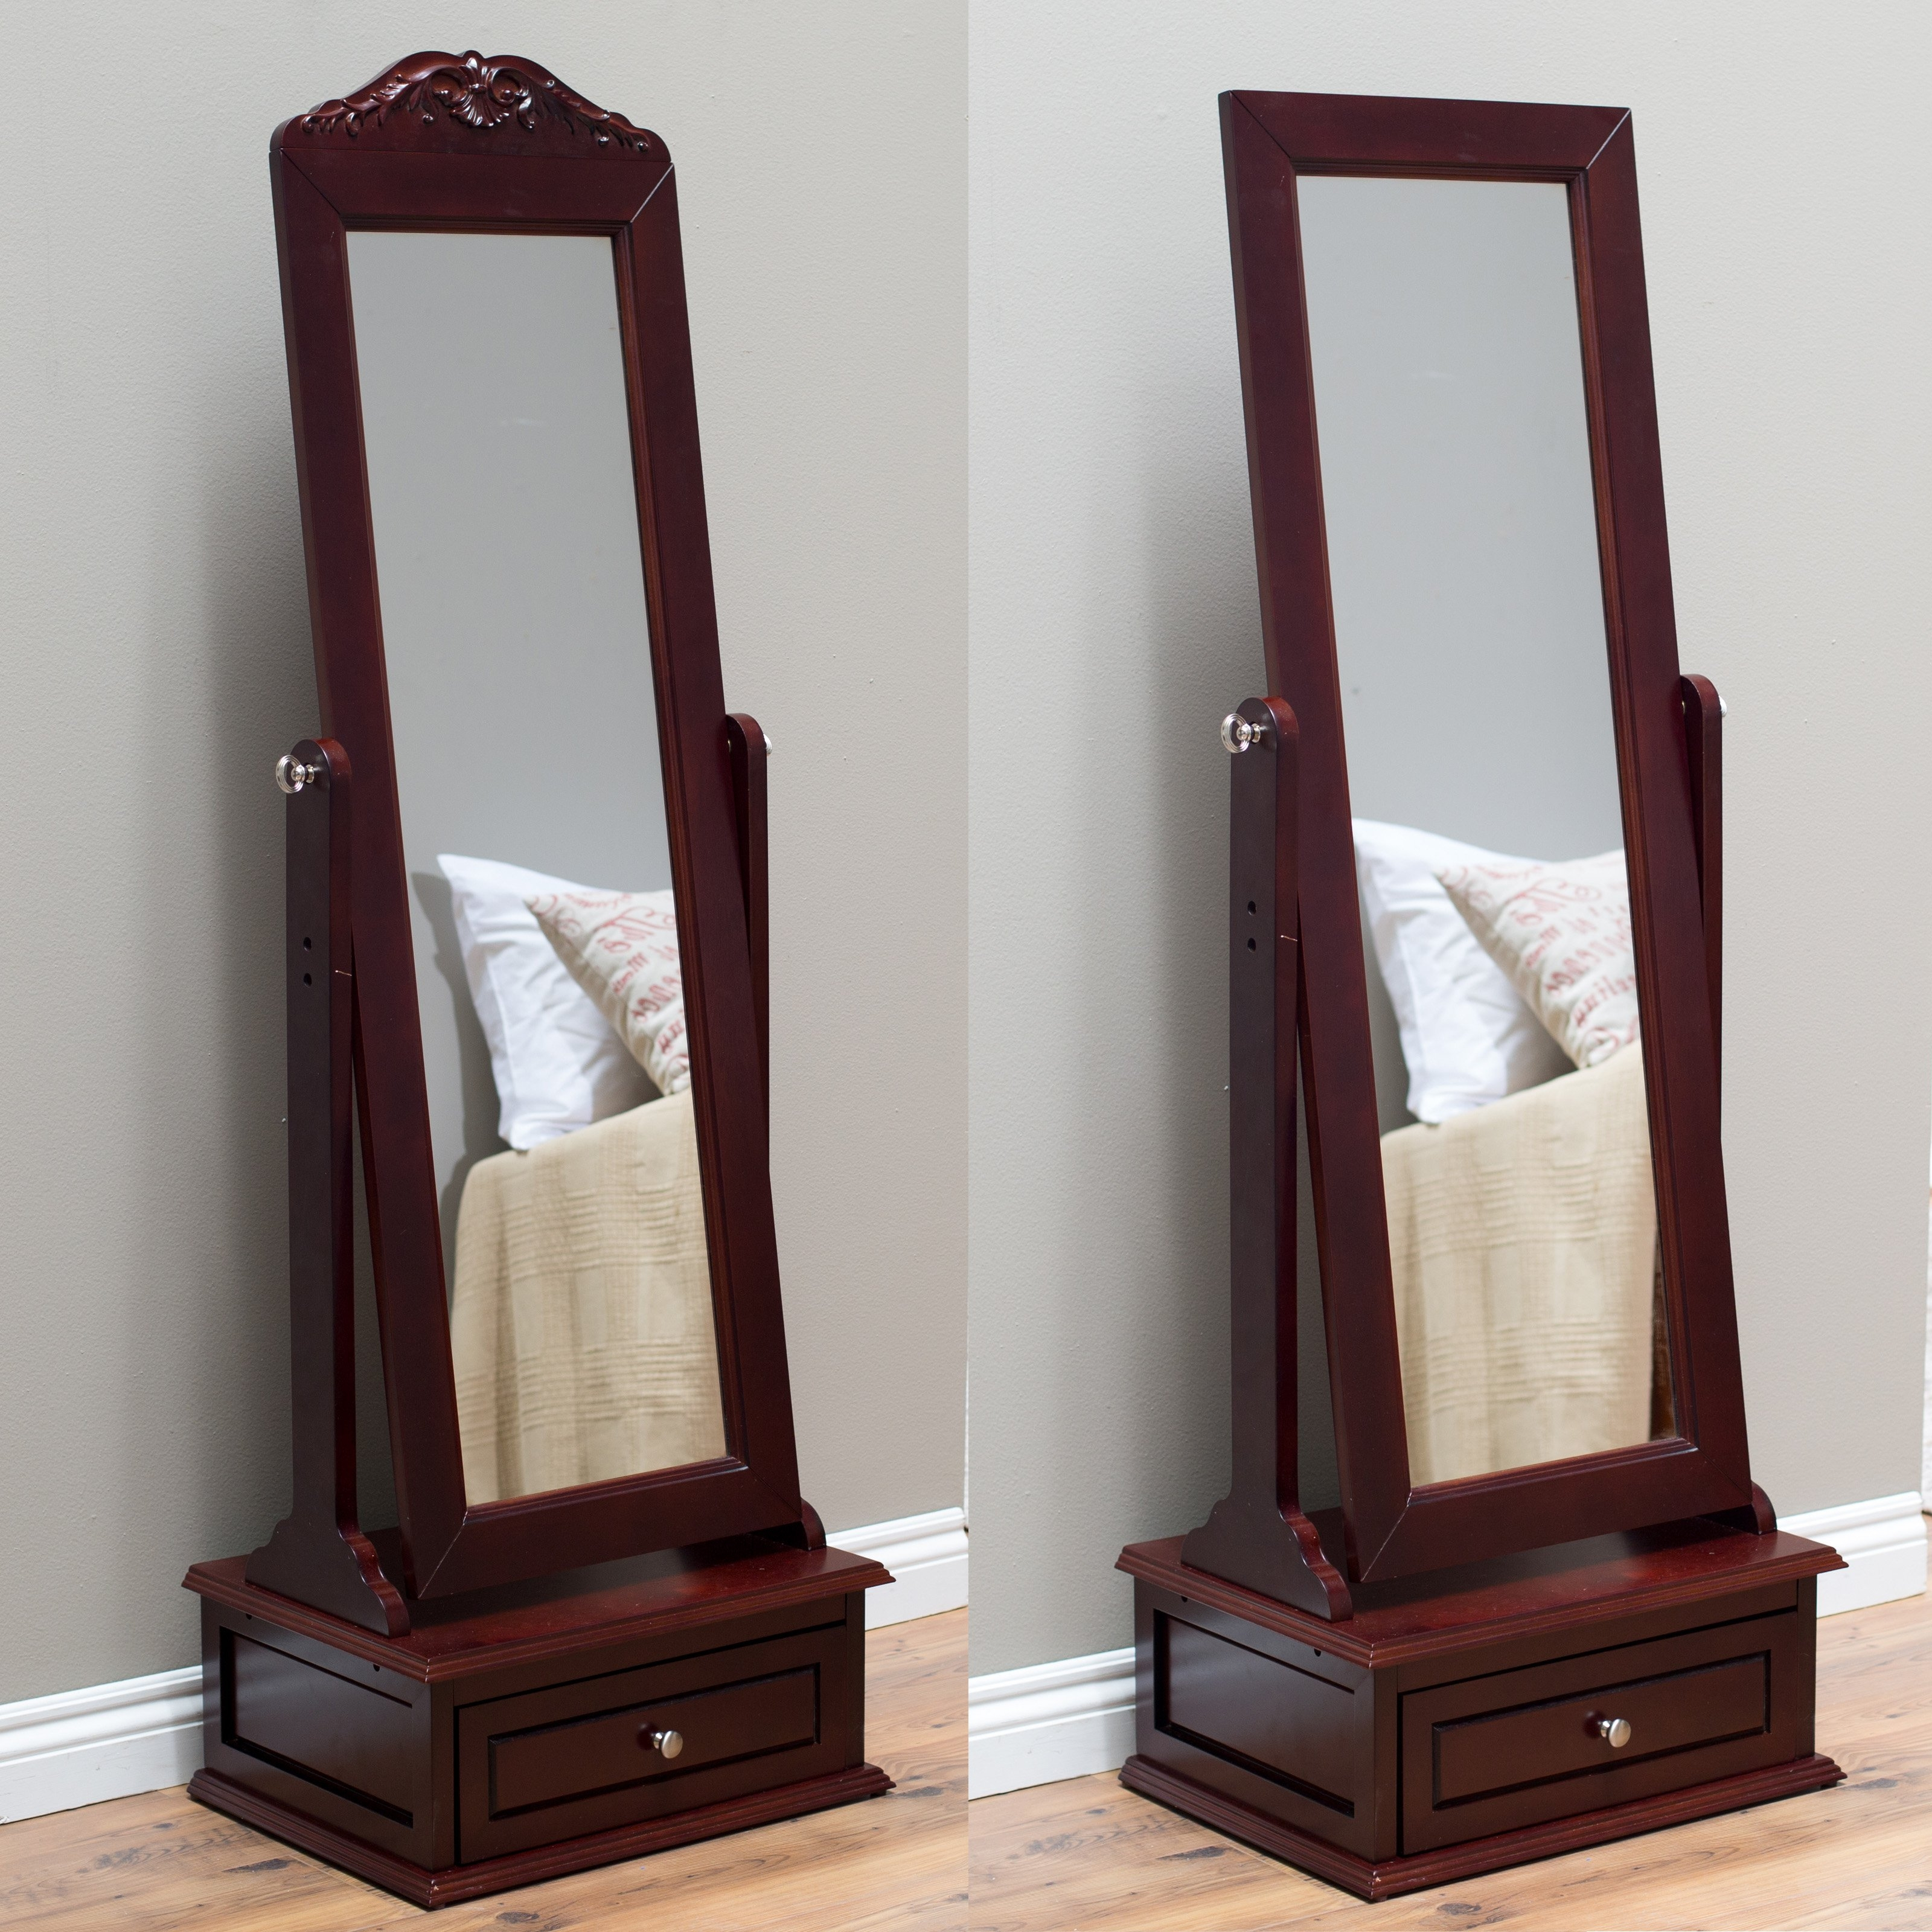 Flooring Incredible Leaningr Mirror Picture Design With Jewelry With Victorian Standing Mirror (Image 8 of 15)